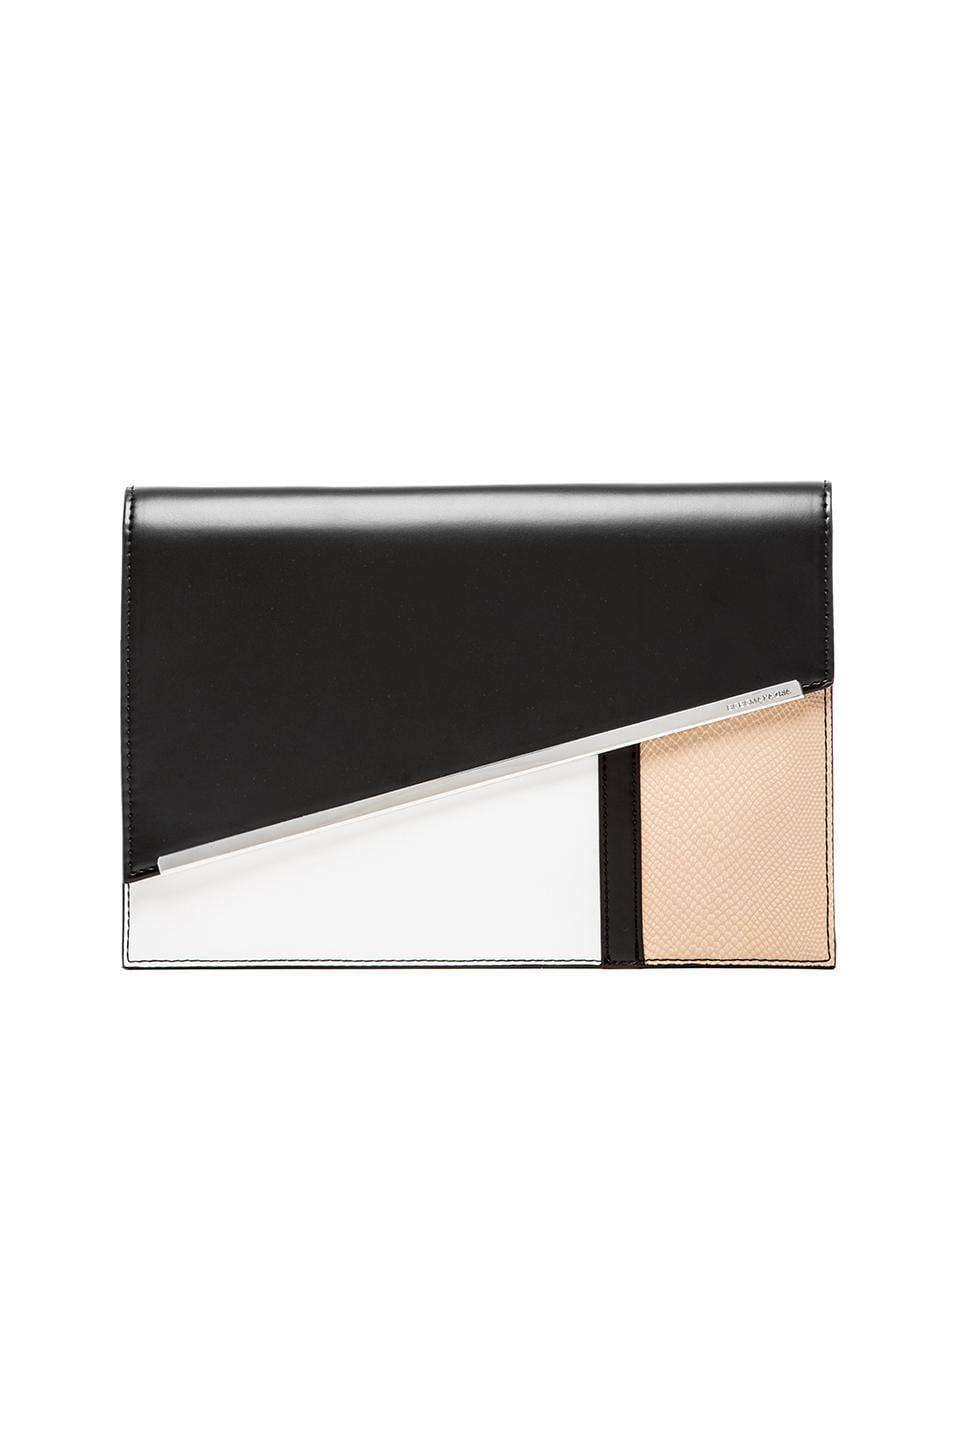 BCBGMAXAZRIA Blocked Asymmetrical Envelope Clutch in Black Combo